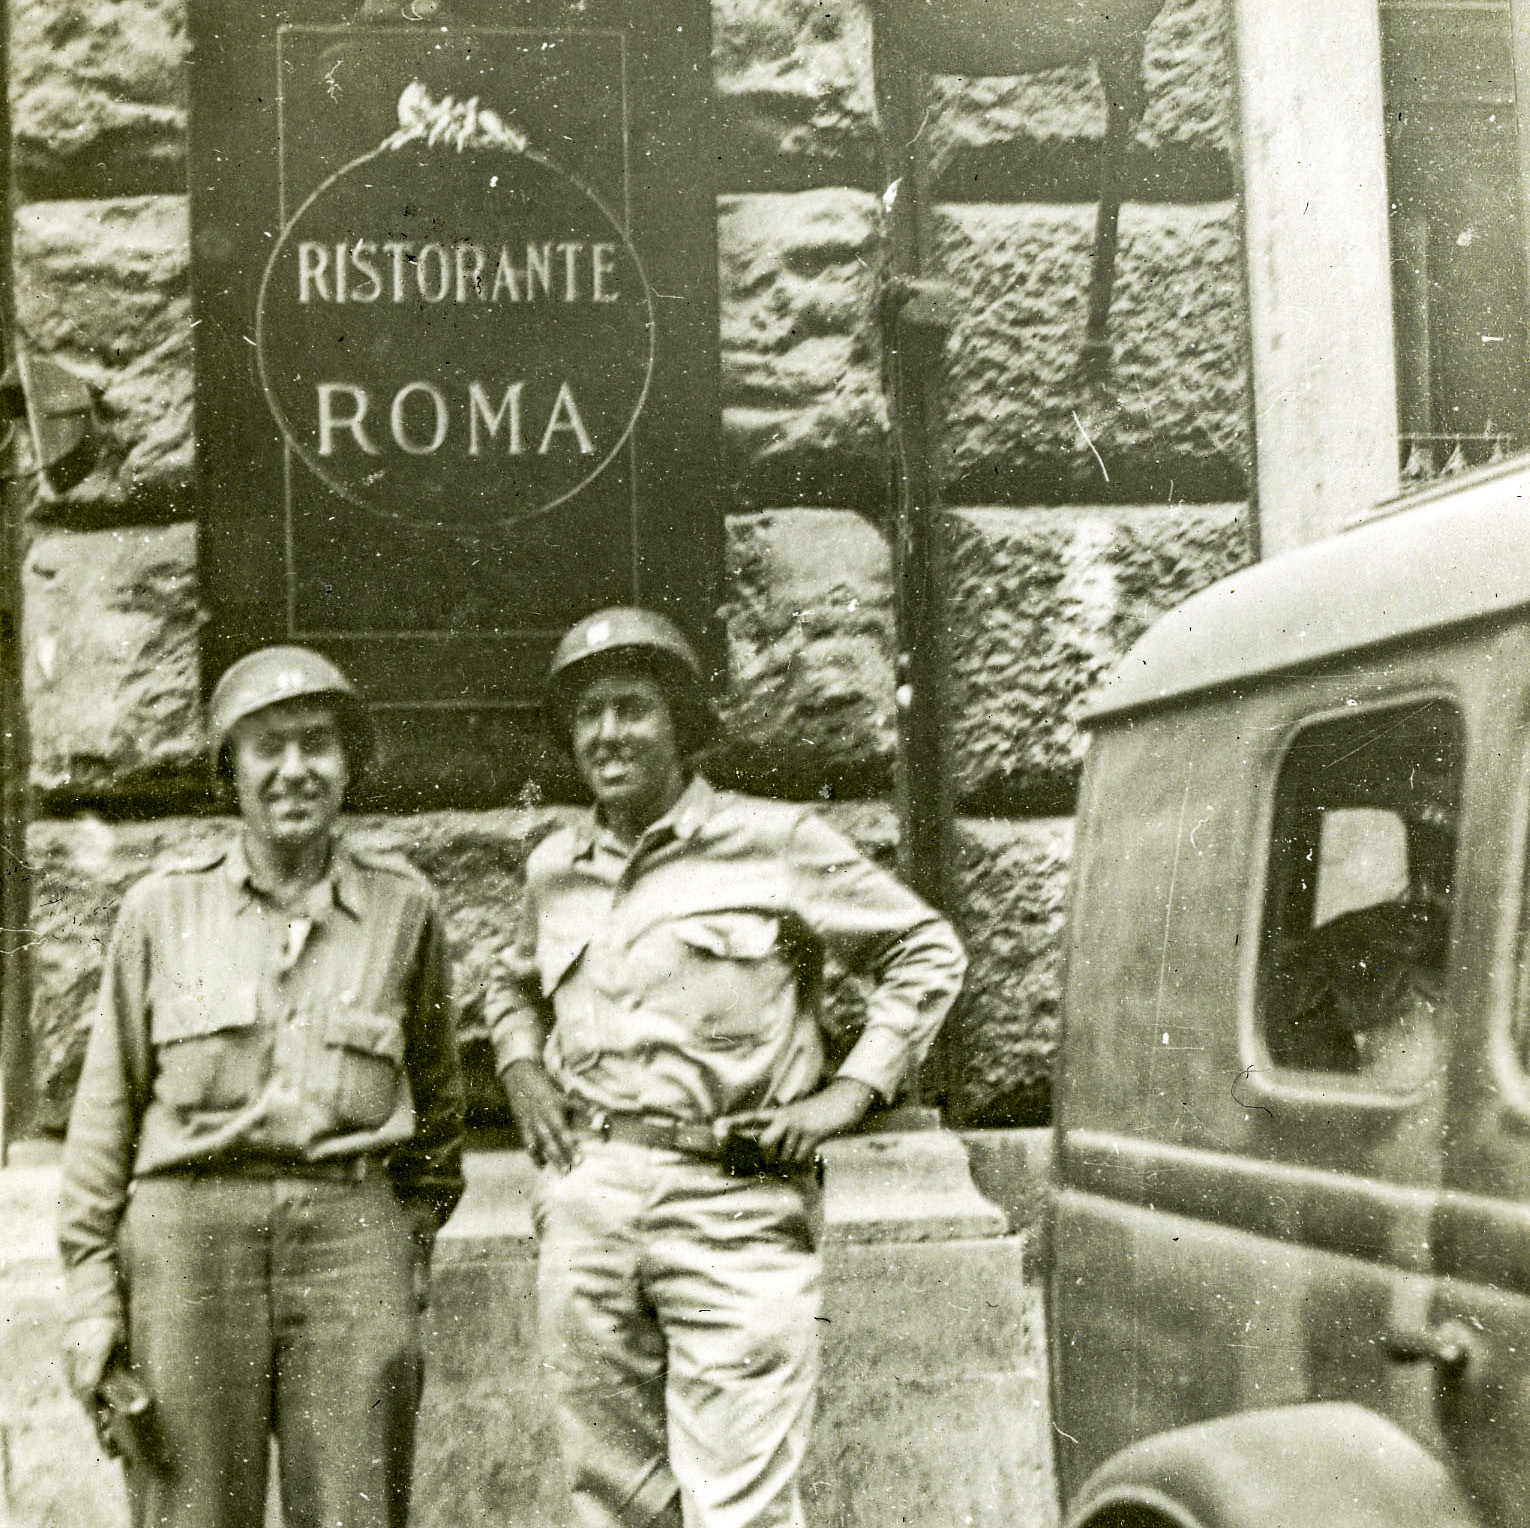 Italy: May 28, 1944 – August 6, 1944